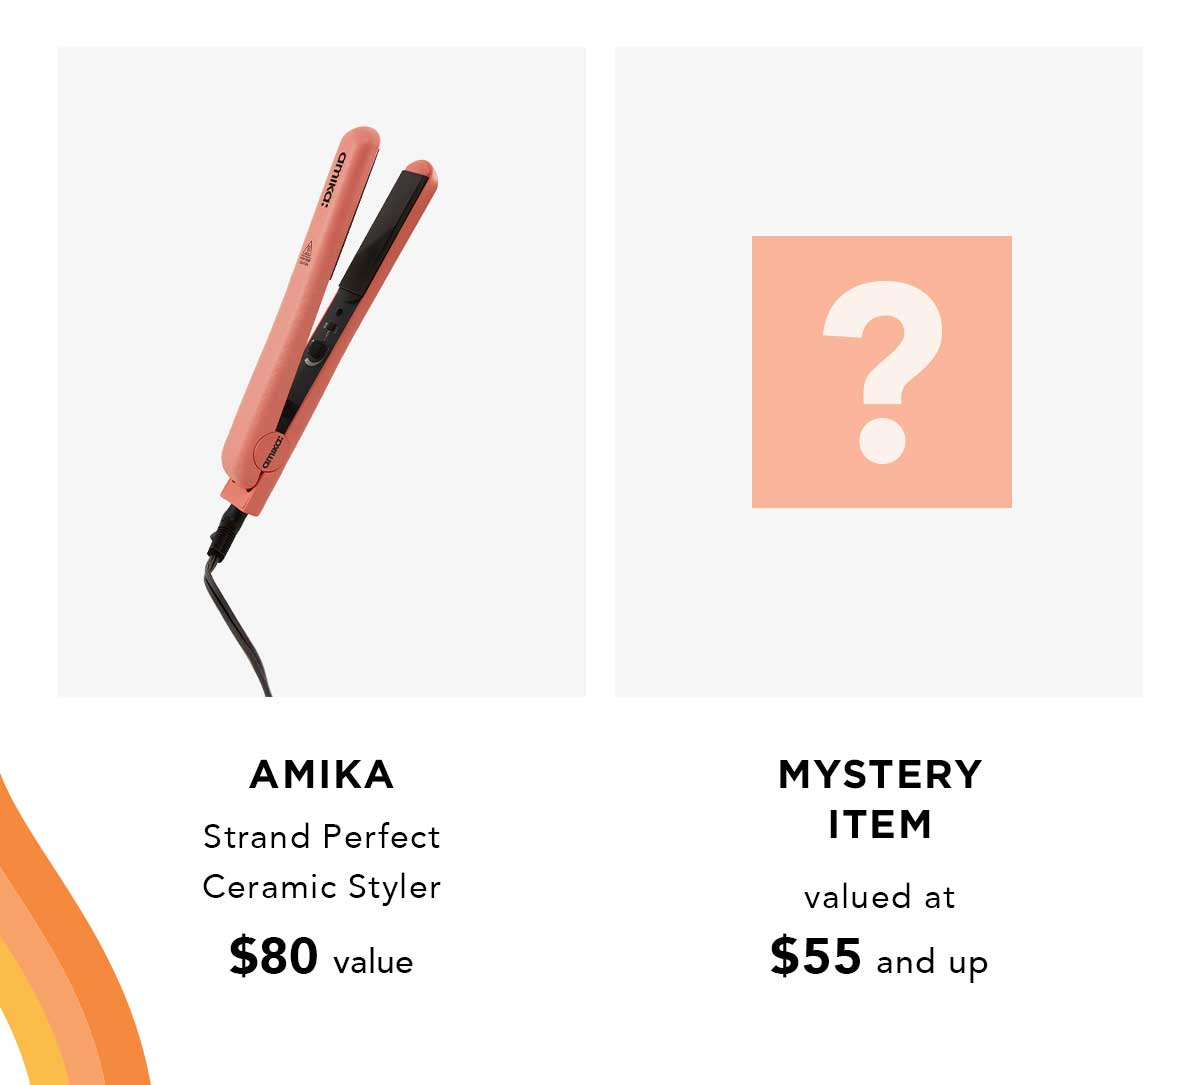 amika, or a mystery item